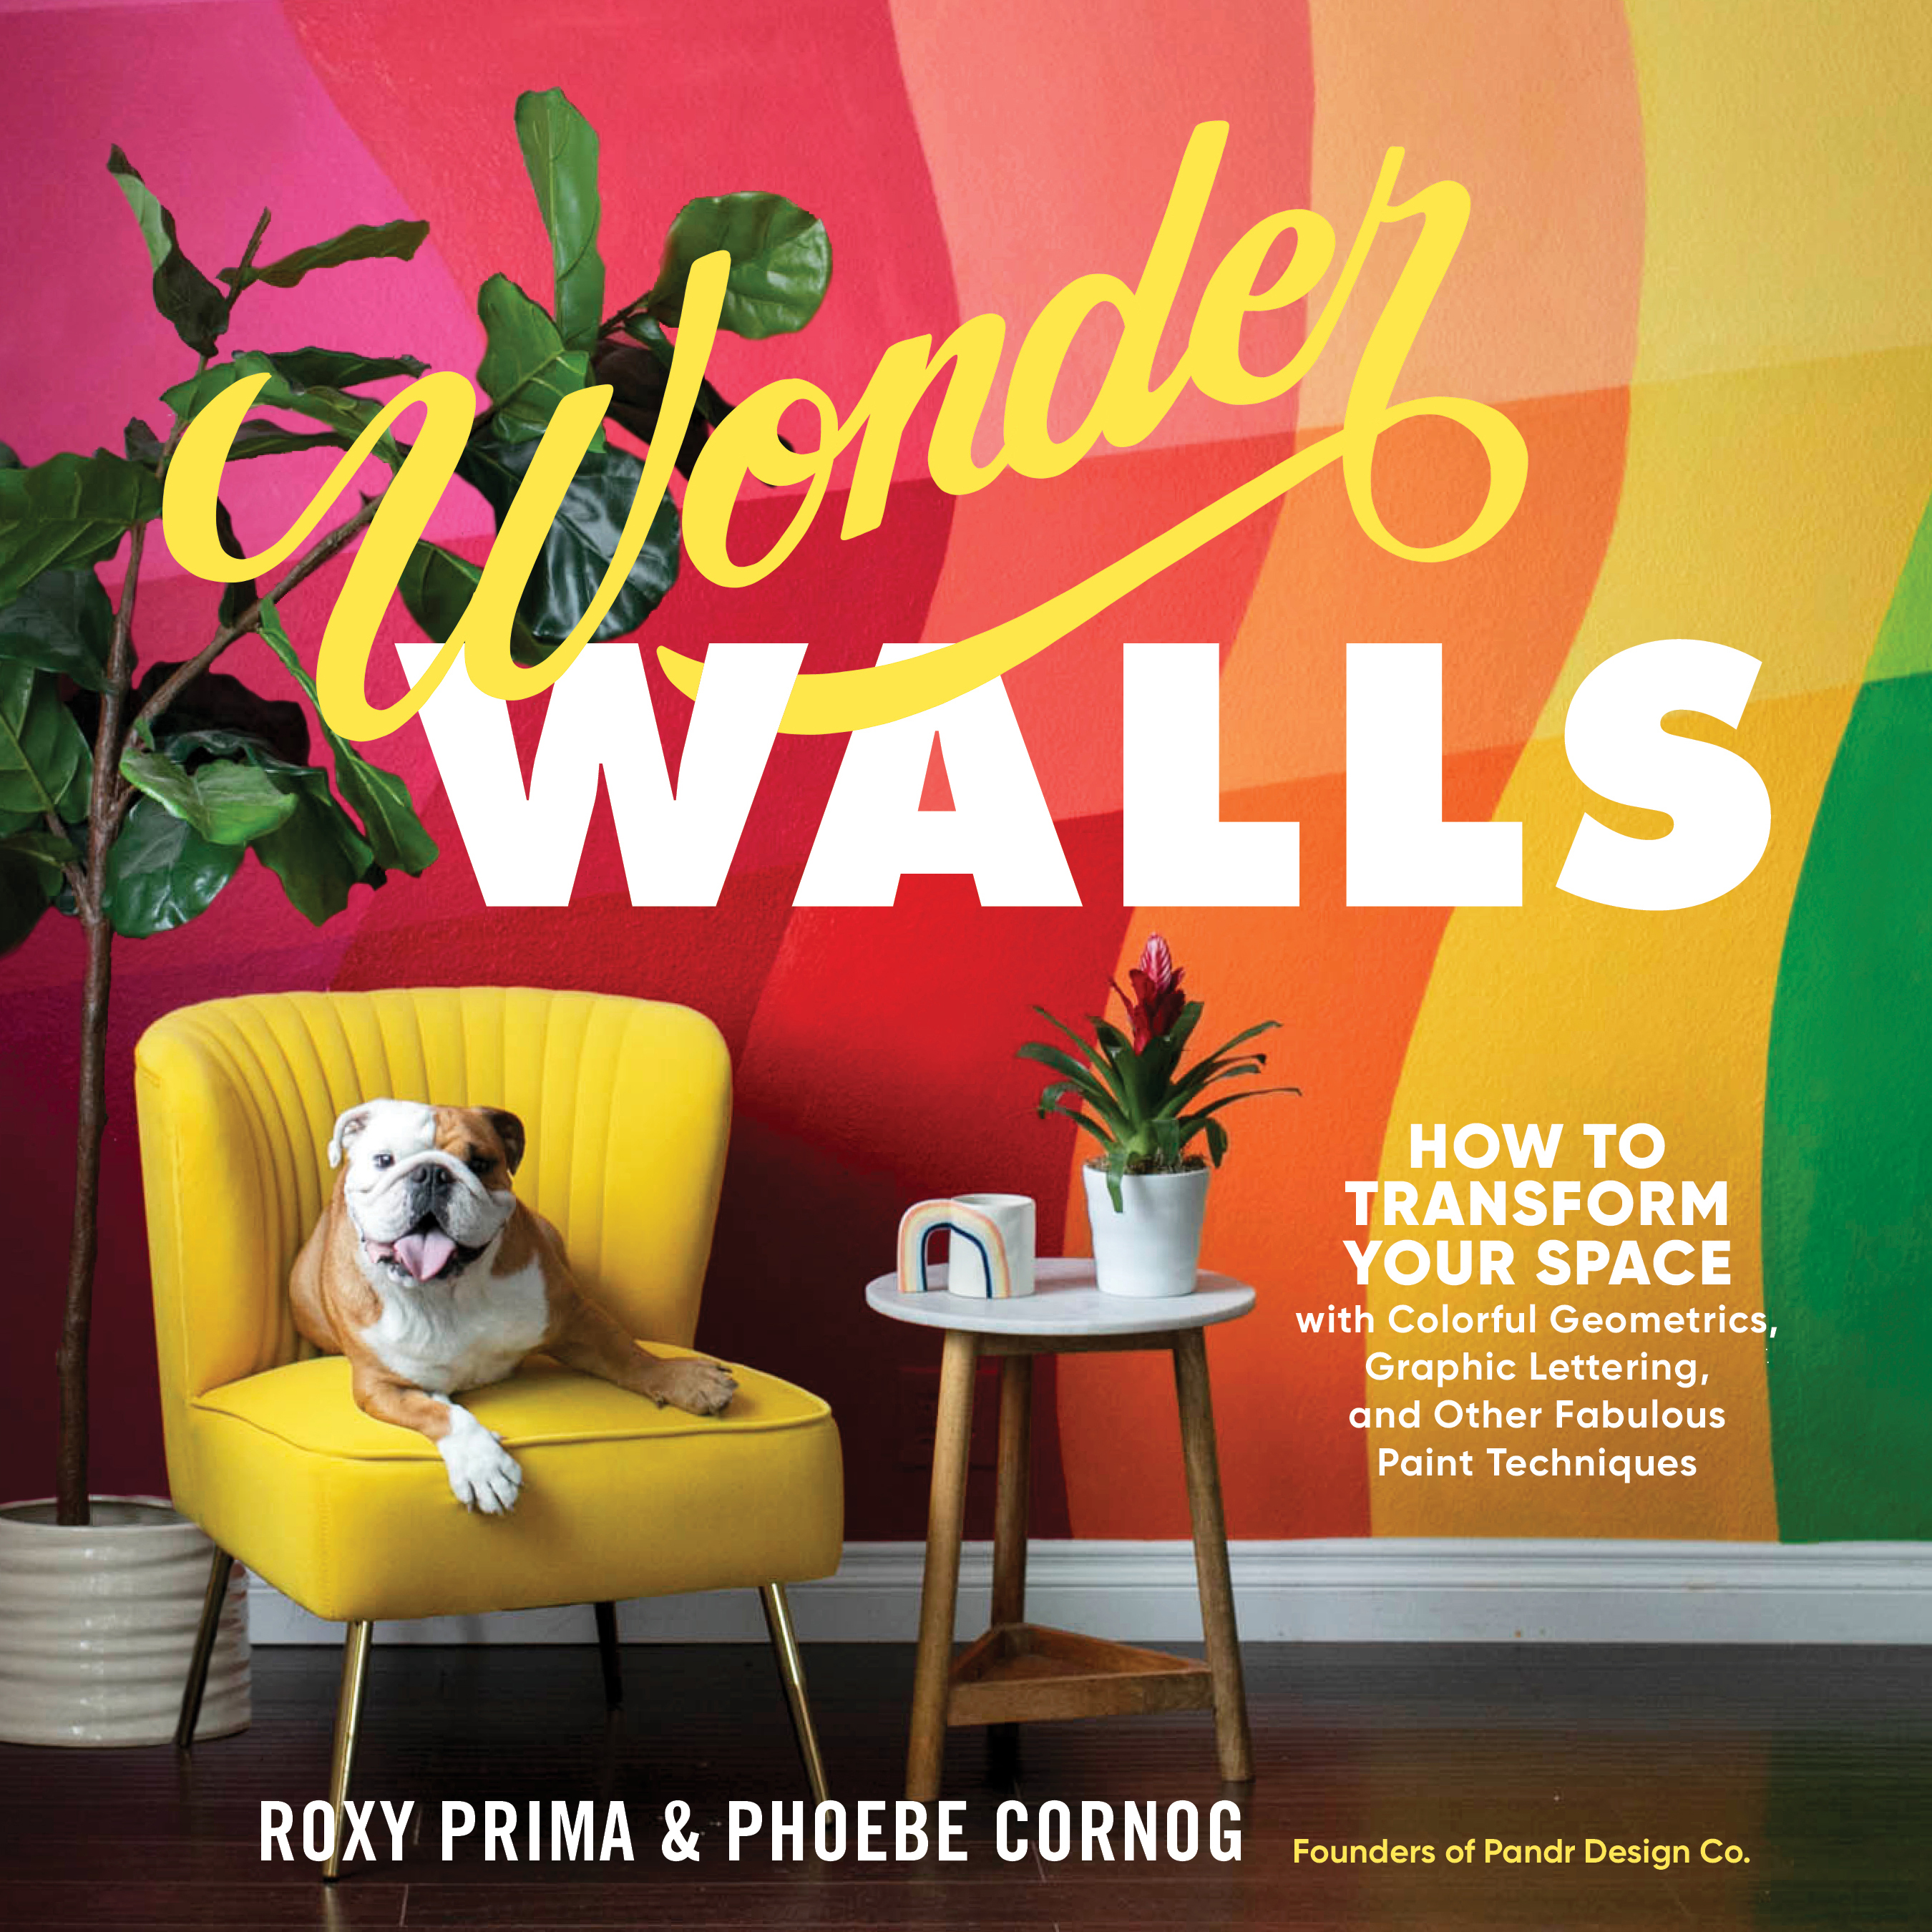 Wonder Walls How to Transform Your Space with Colorful Geometrics, Graphic Lettering, and Other Fabulous Paint Techniques - Phoebe Cornog